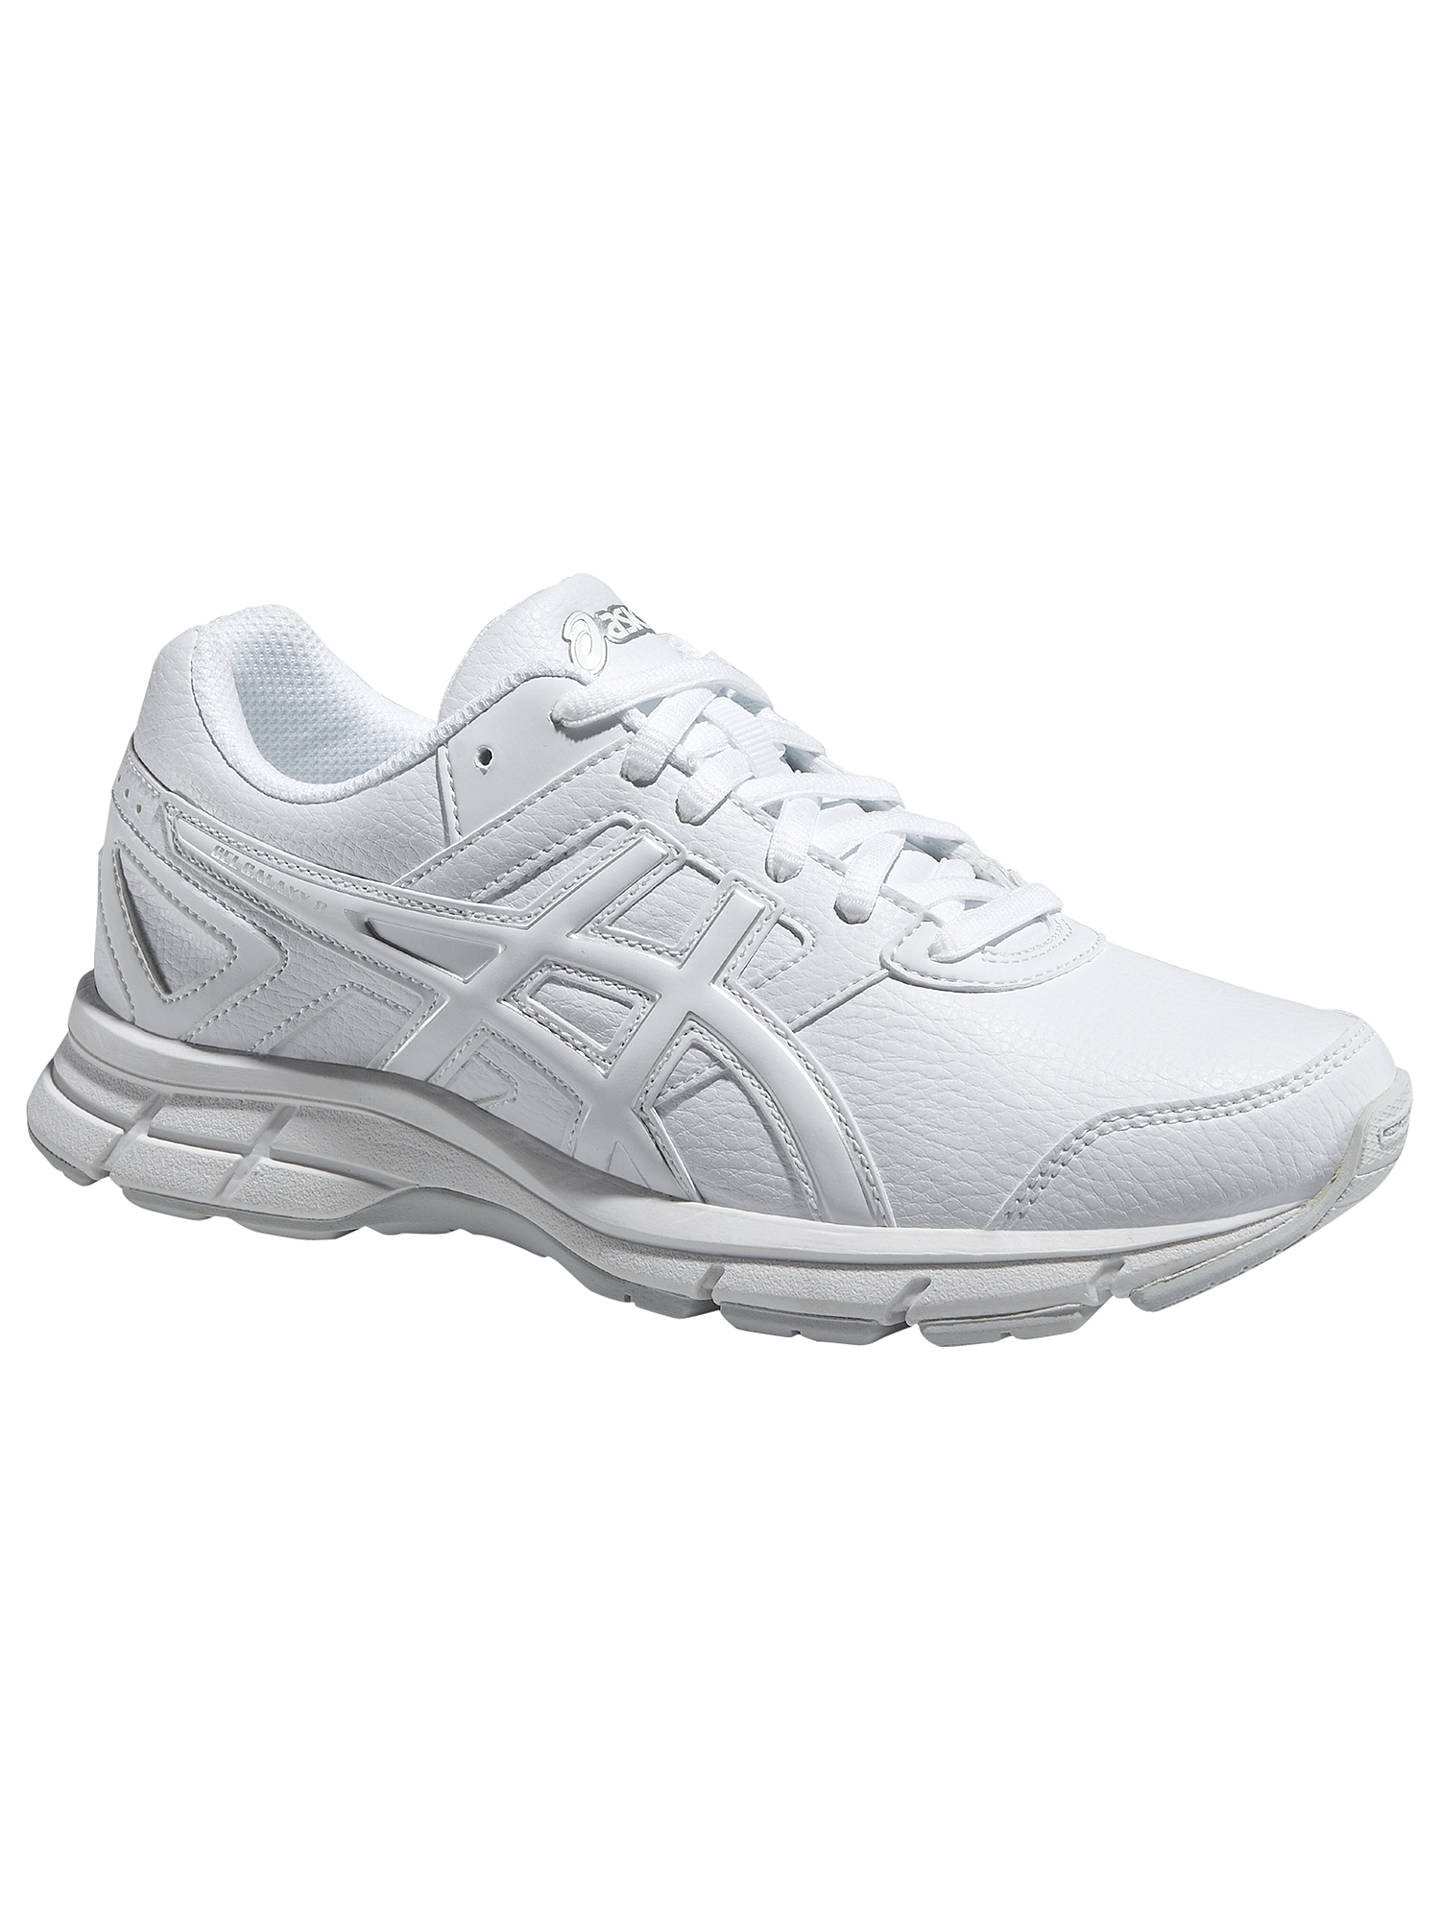 e77707450d45 Asics Children's Gel-Galaxy 8 GS Running Shoes, White/Silver at John ...